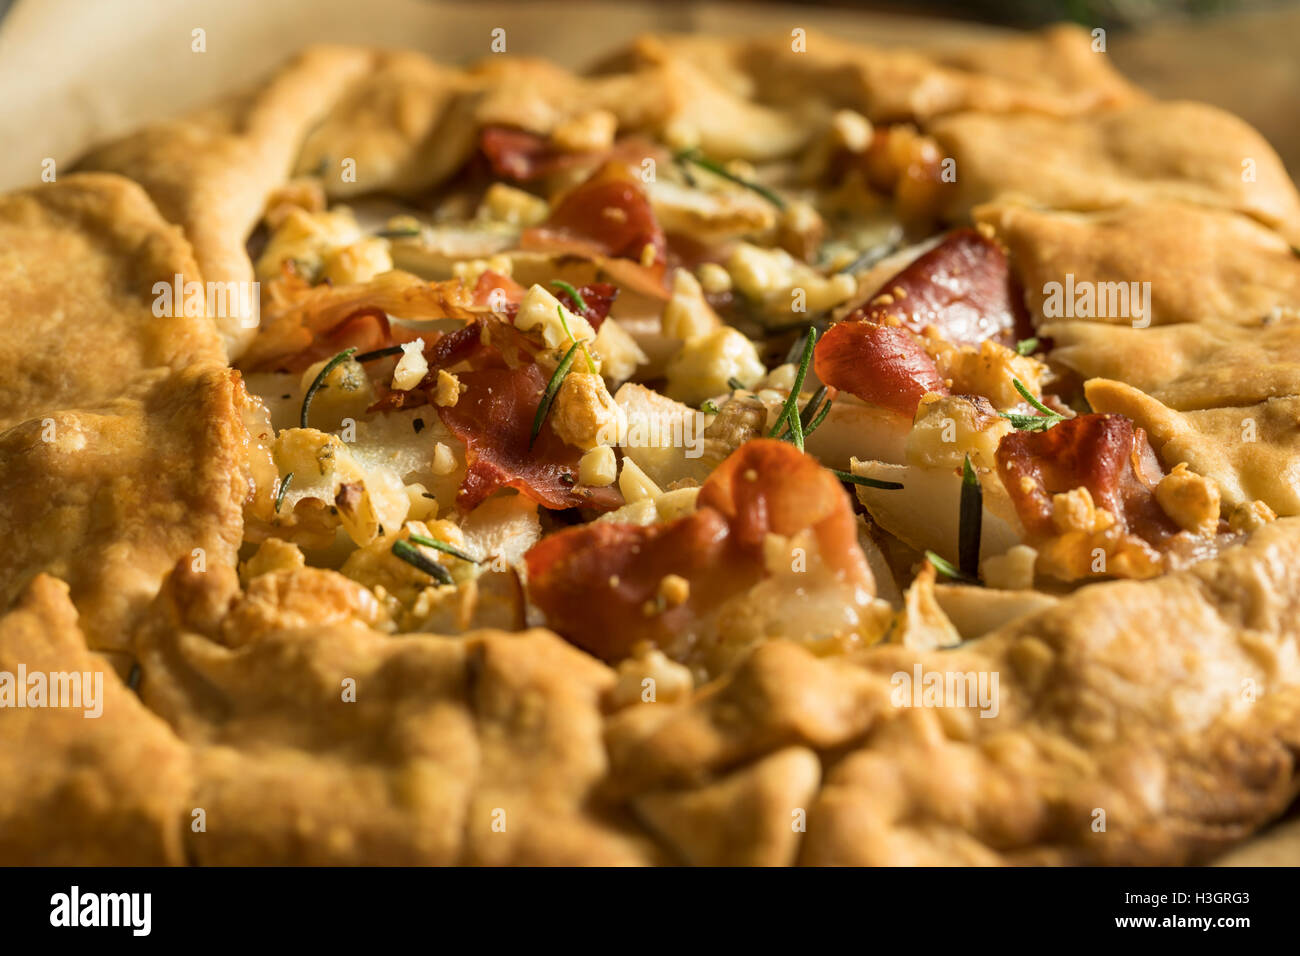 Savory Prosciutto Cheese and Pear Galette Ready to Eat - Stock Image